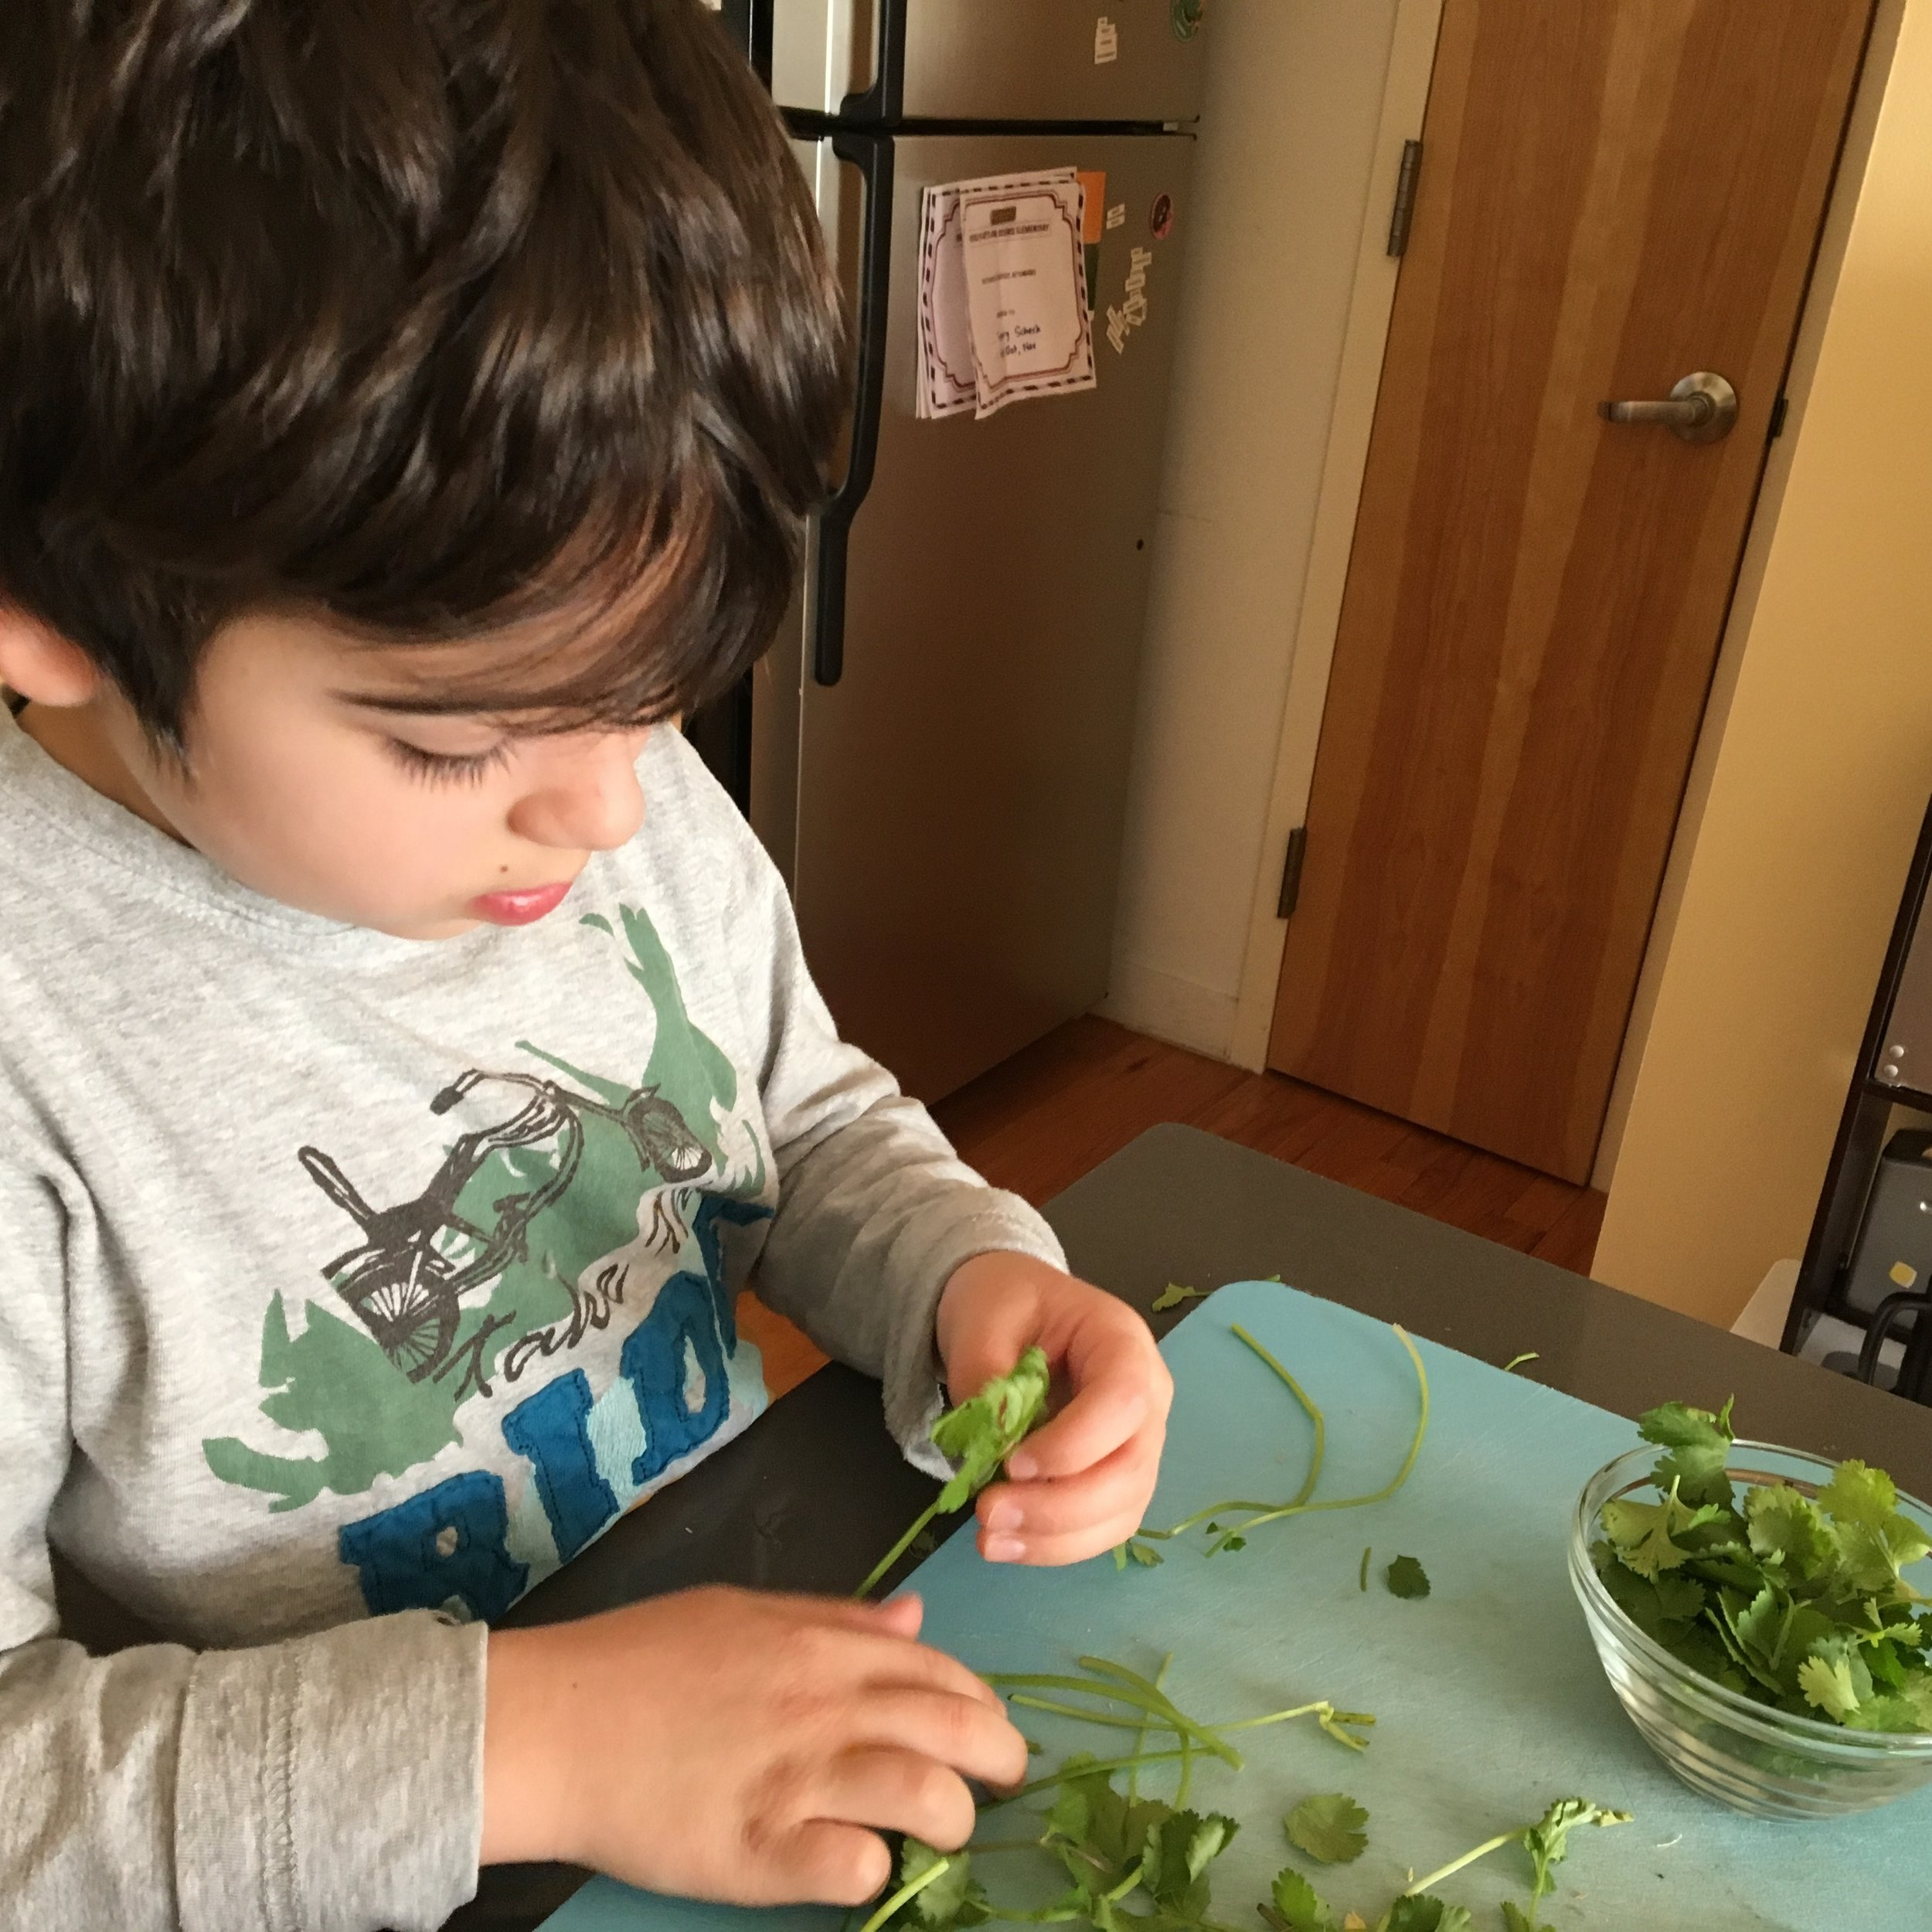 Pluck Herbs - Let's face it, you don't have time to pull the herb leaves from their stems and so in a hurry, you often find yourself using the stems even though you know you probably shouldn't. Let your kids take the leaves from the stems and set them aside. Kids can help you make a pesto or prepare a garnish. Or they can simple get the leaves ready for use in a recipe you're making tomorrow. They will likely eat a few along the way and that's great news. #eatyourgreens